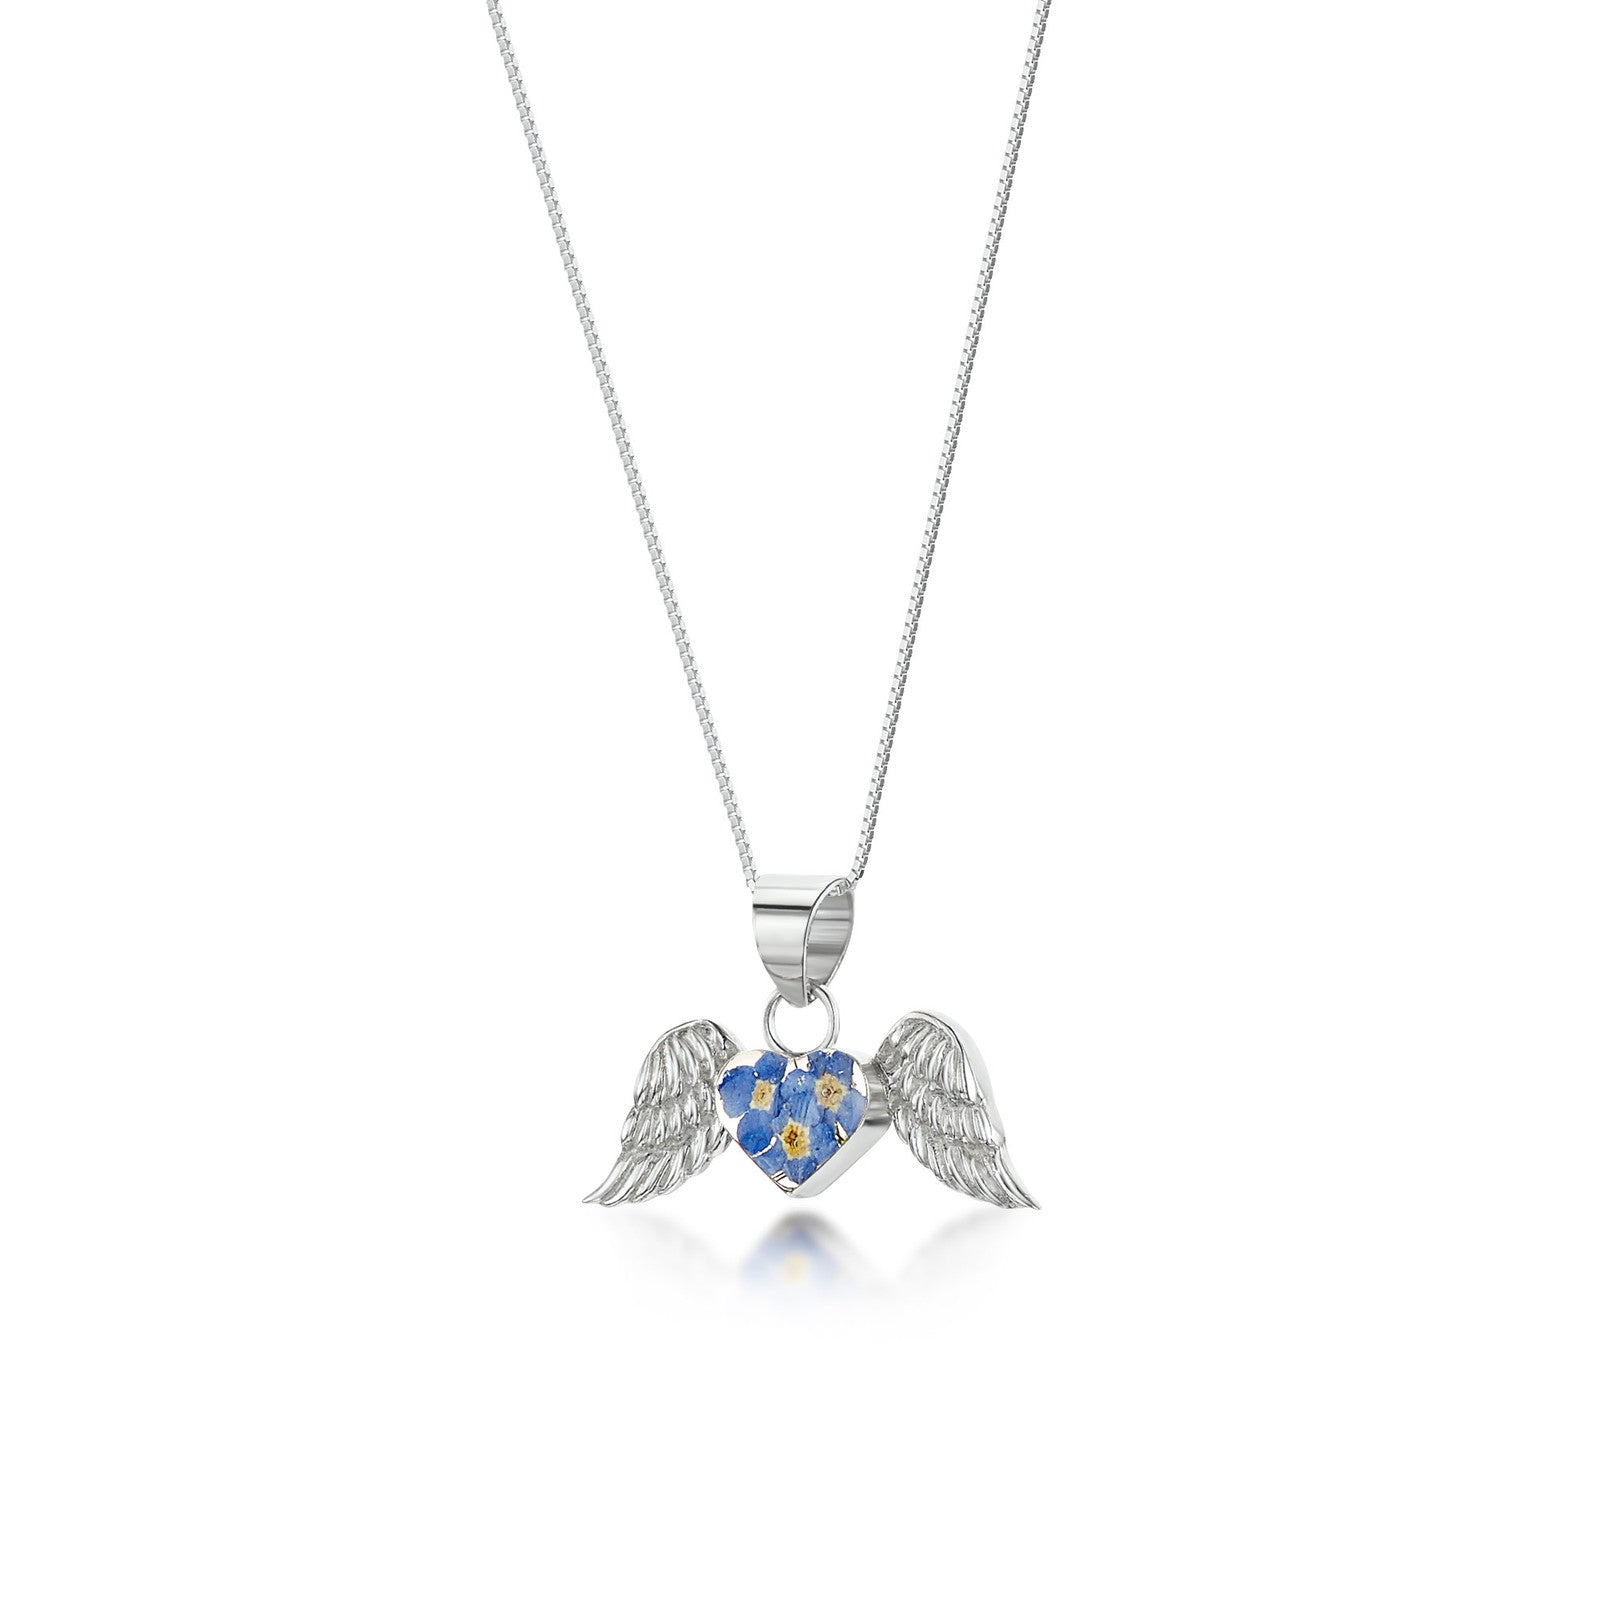 Silver Necklace - Forget me not - Angel wings